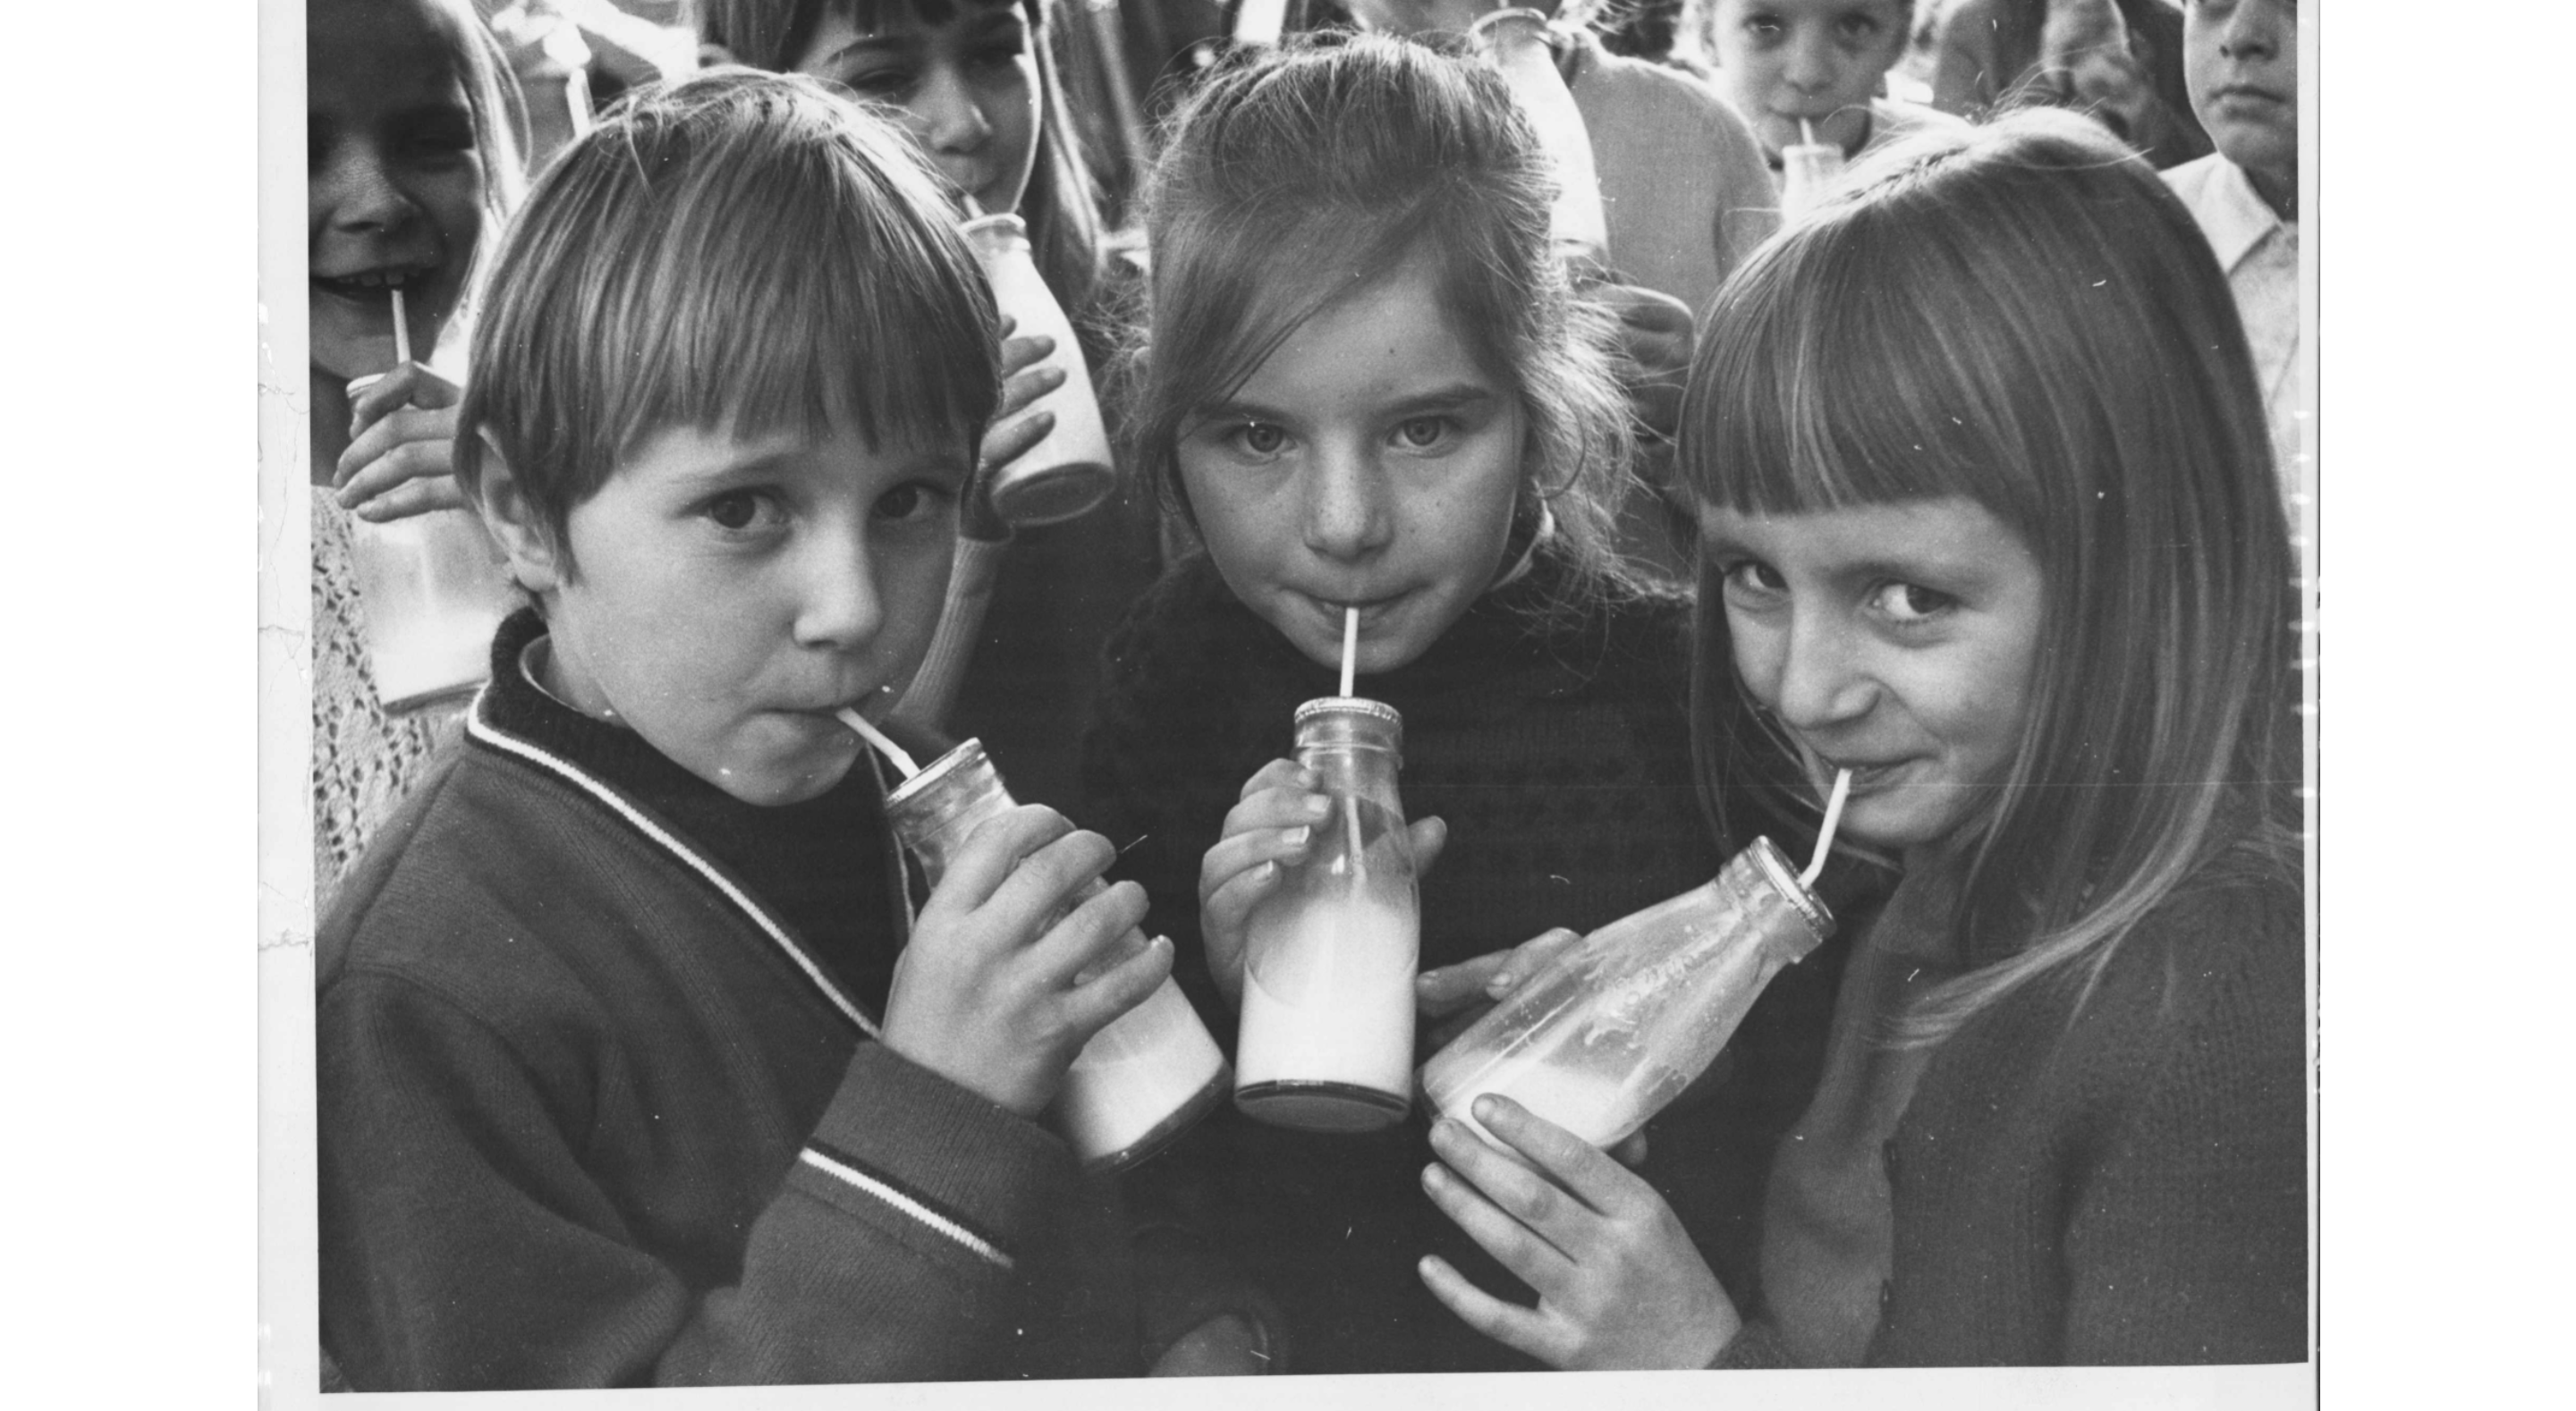 Old school photo of children drinking milk